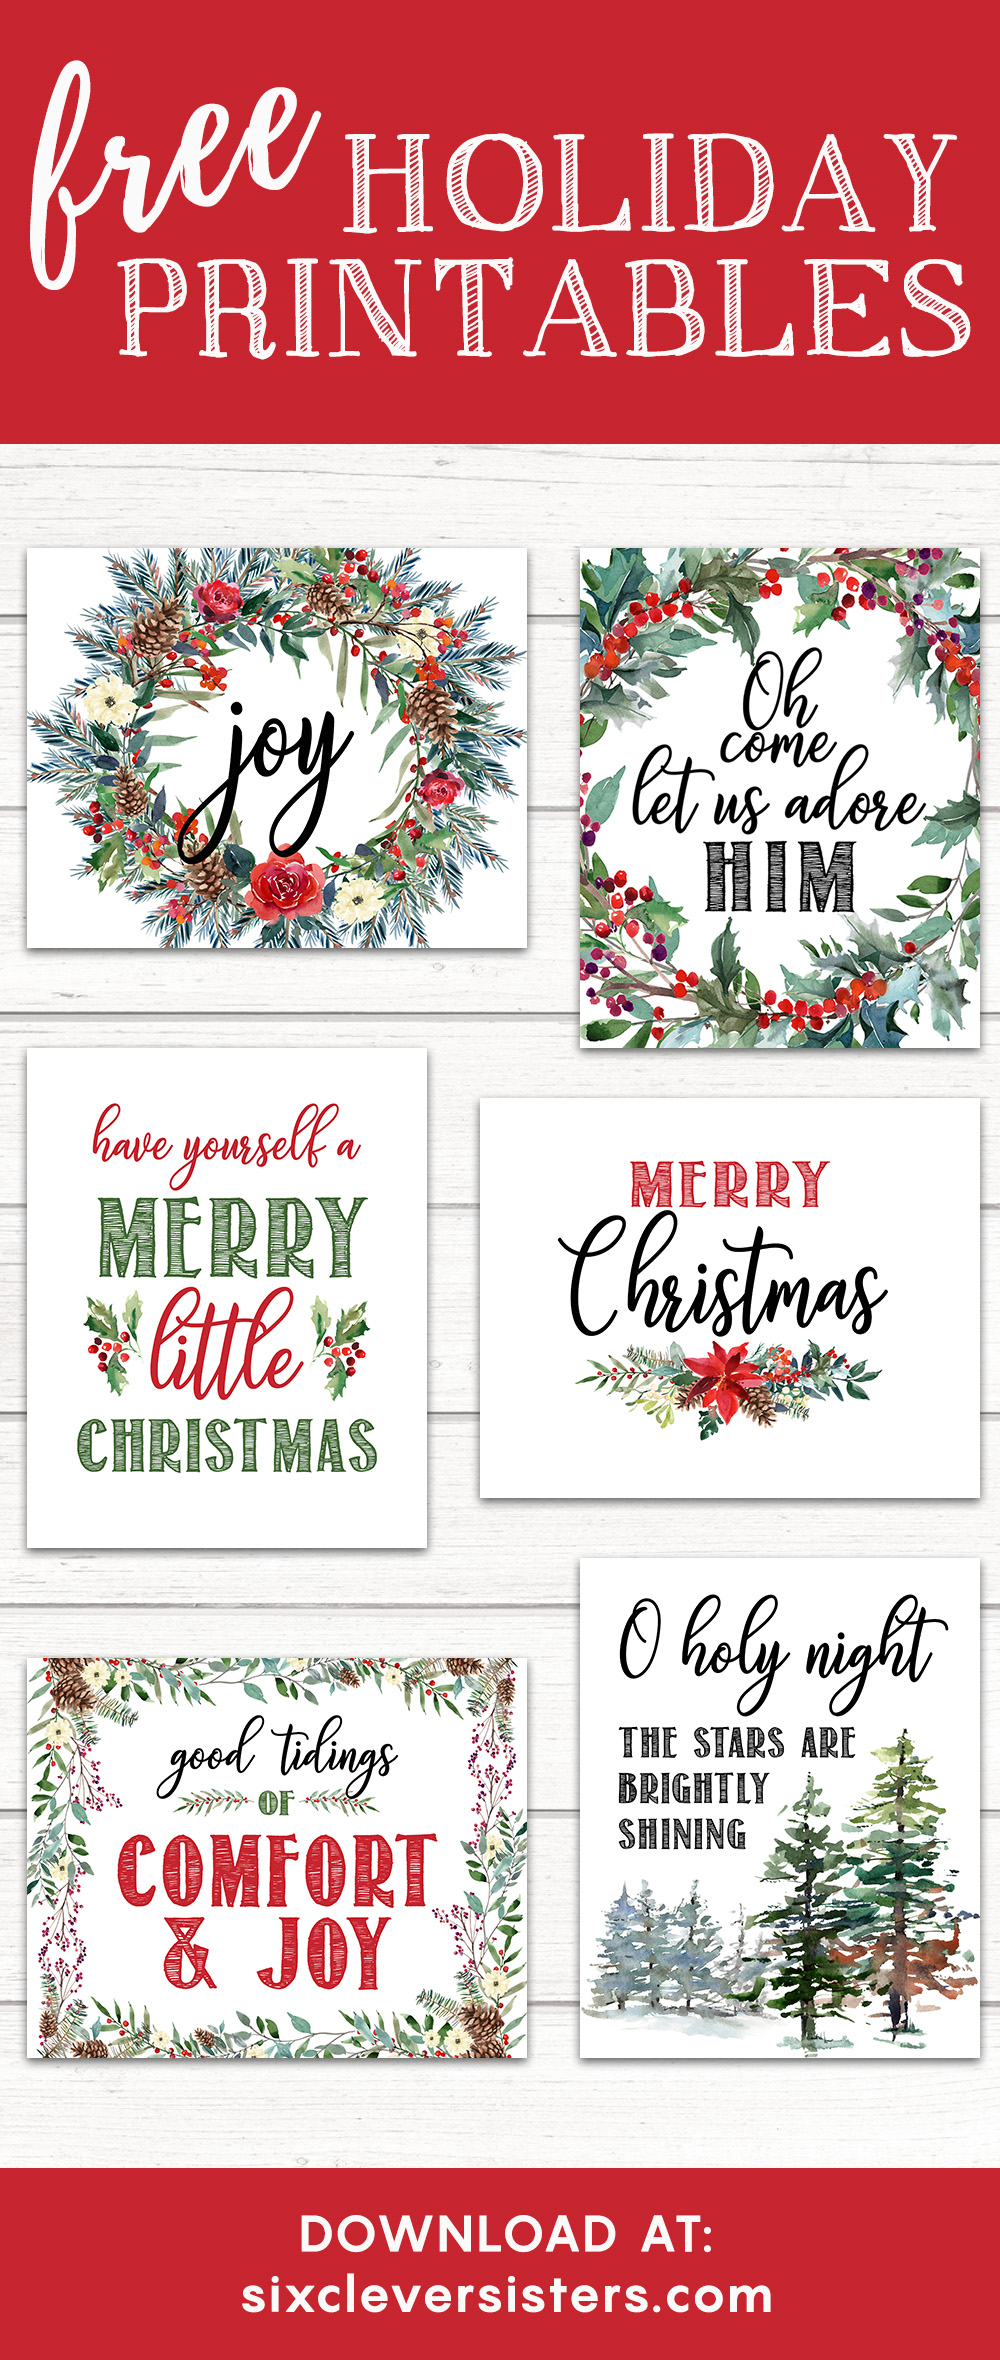 graphic relating to Merry Christmas Printable identified as 6 Cost-free Printable Xmas Indicators - 6 Wise Sisters